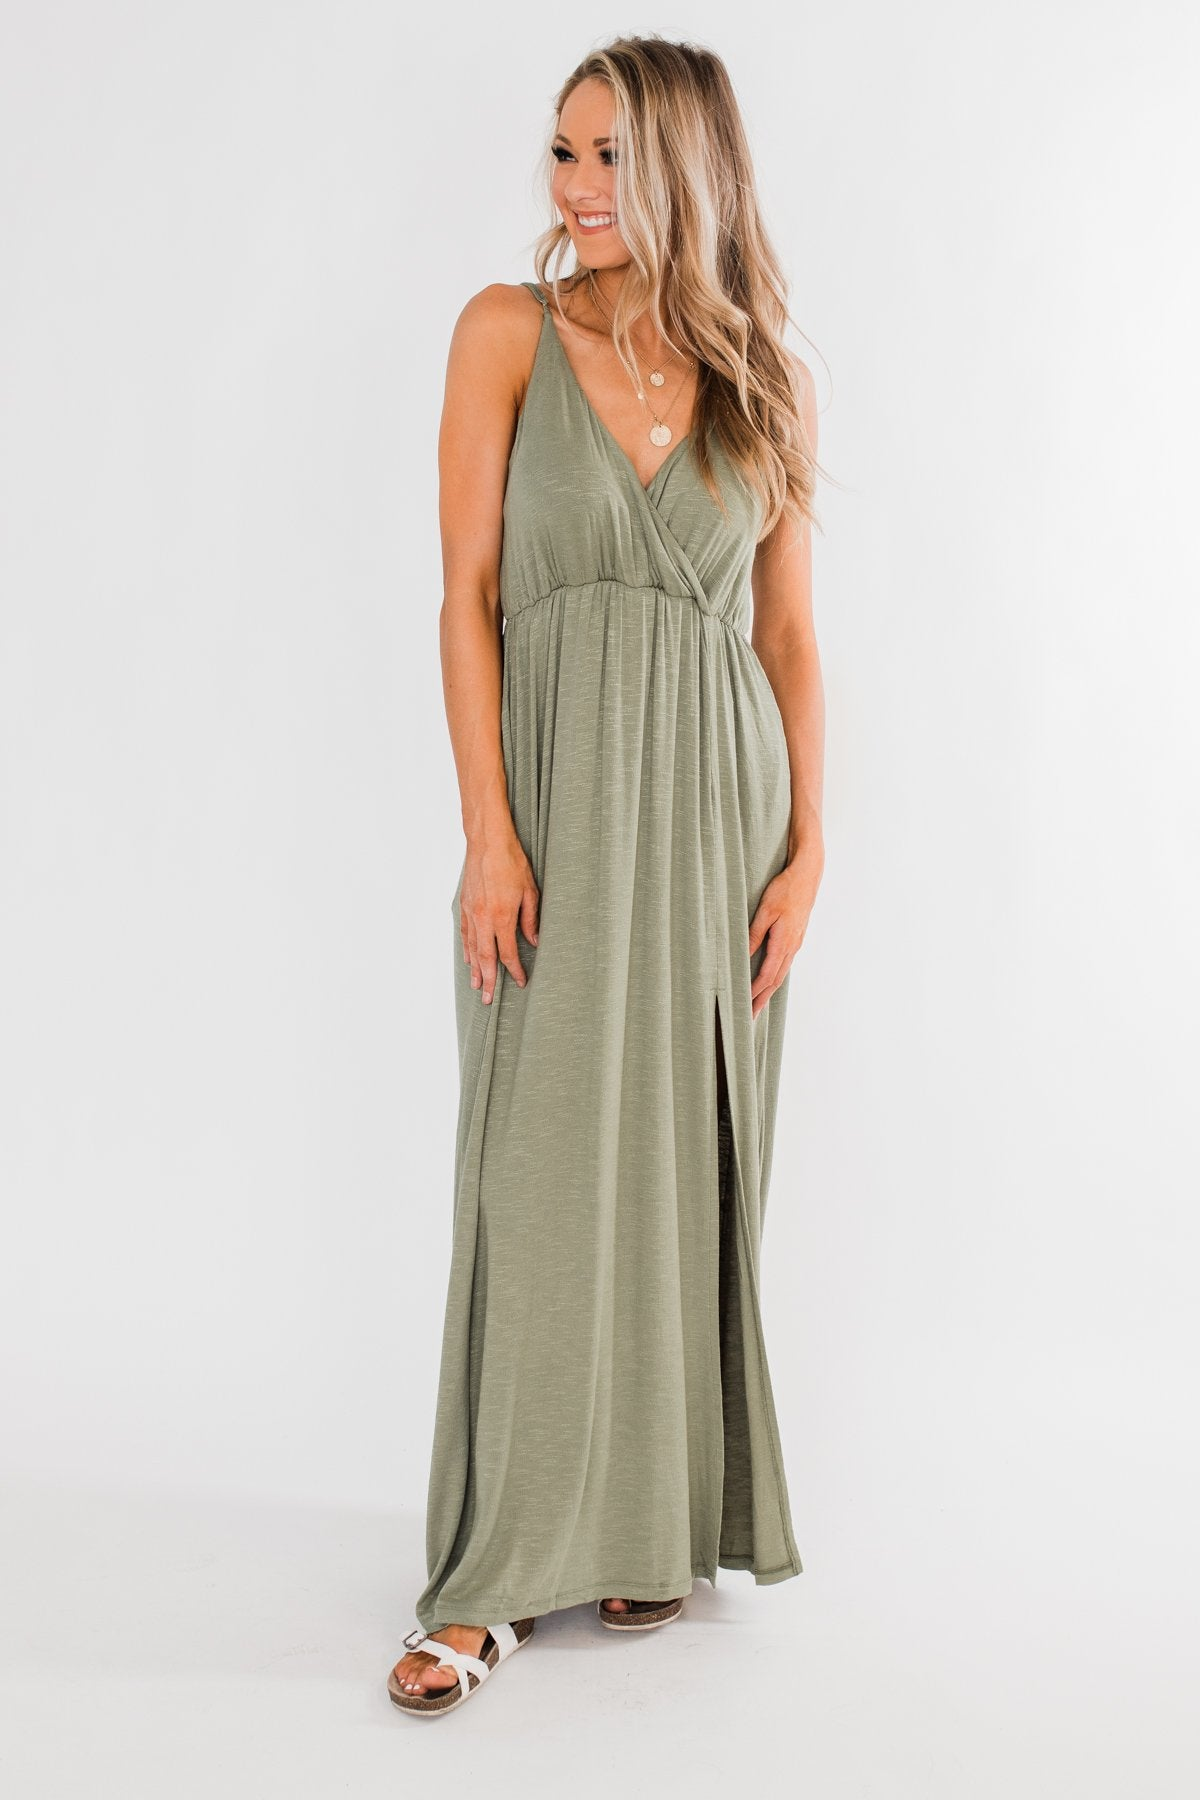 Next Right Step Maxi Dress- Olive